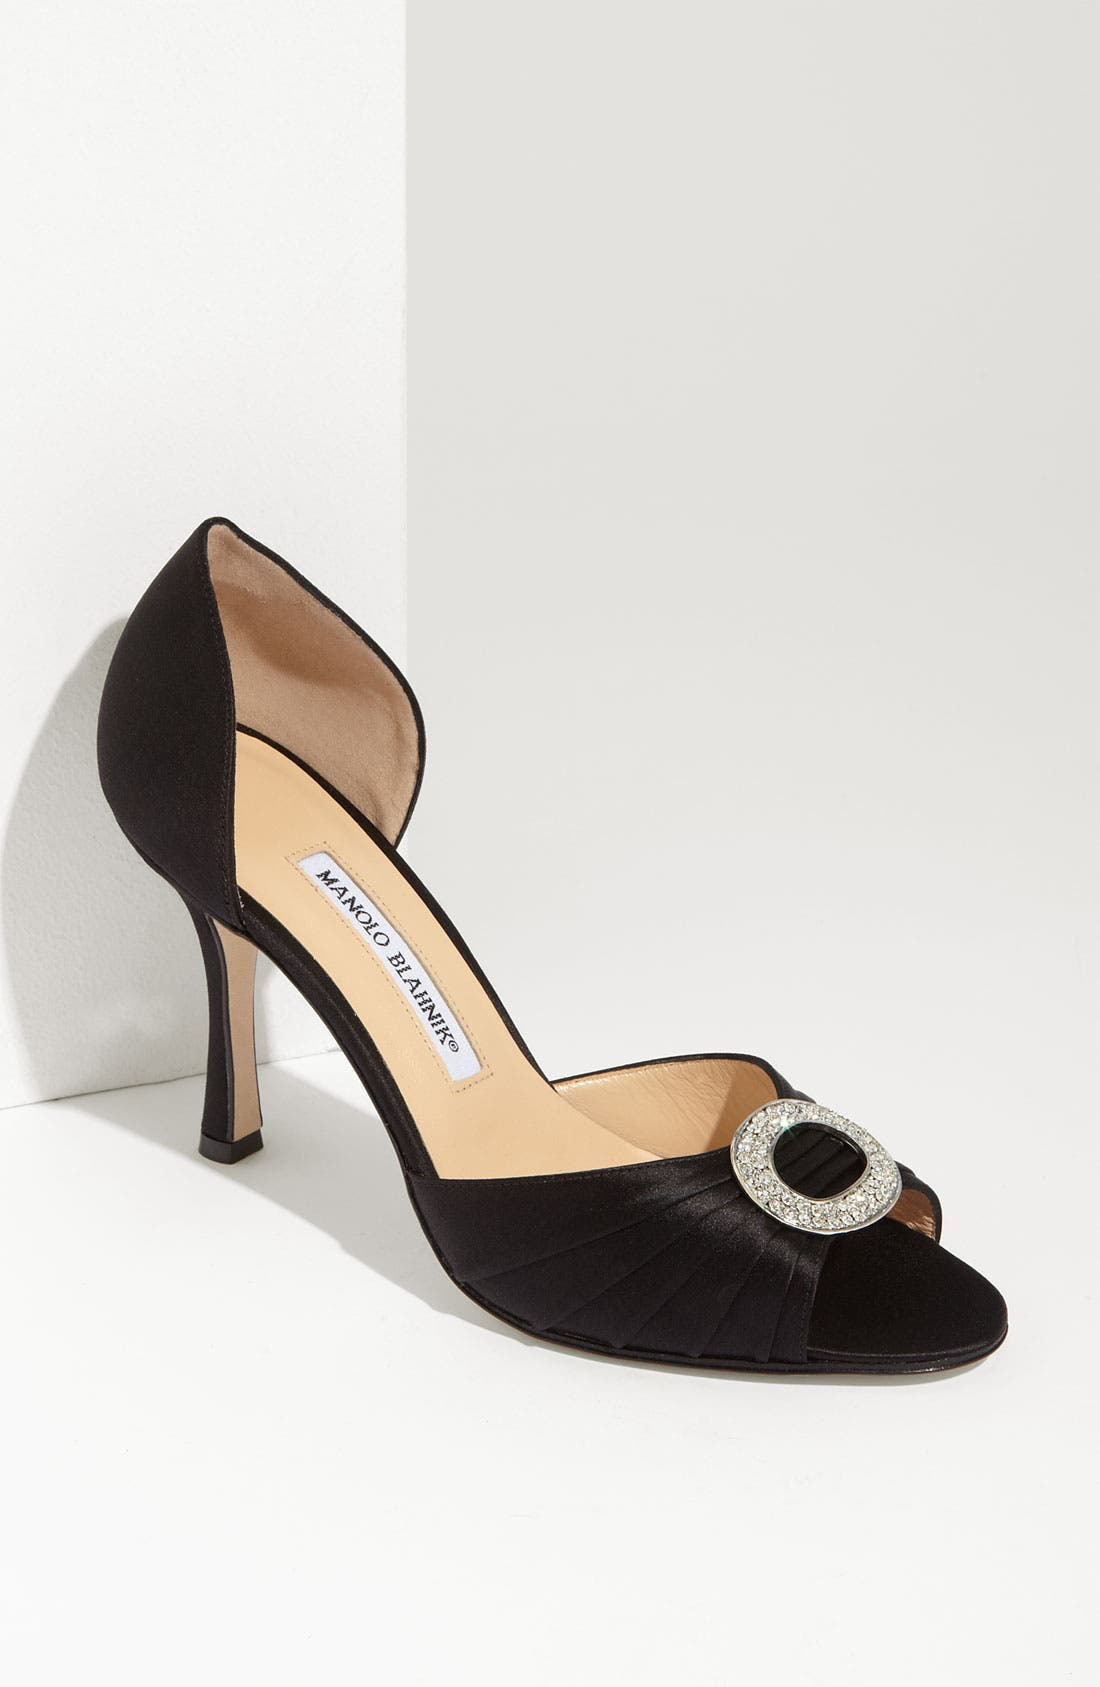 MANOLO BLAHNIK, 'Sedaraby' Open Toe d'Orsay Pump, Main thumbnail 1, color, 001